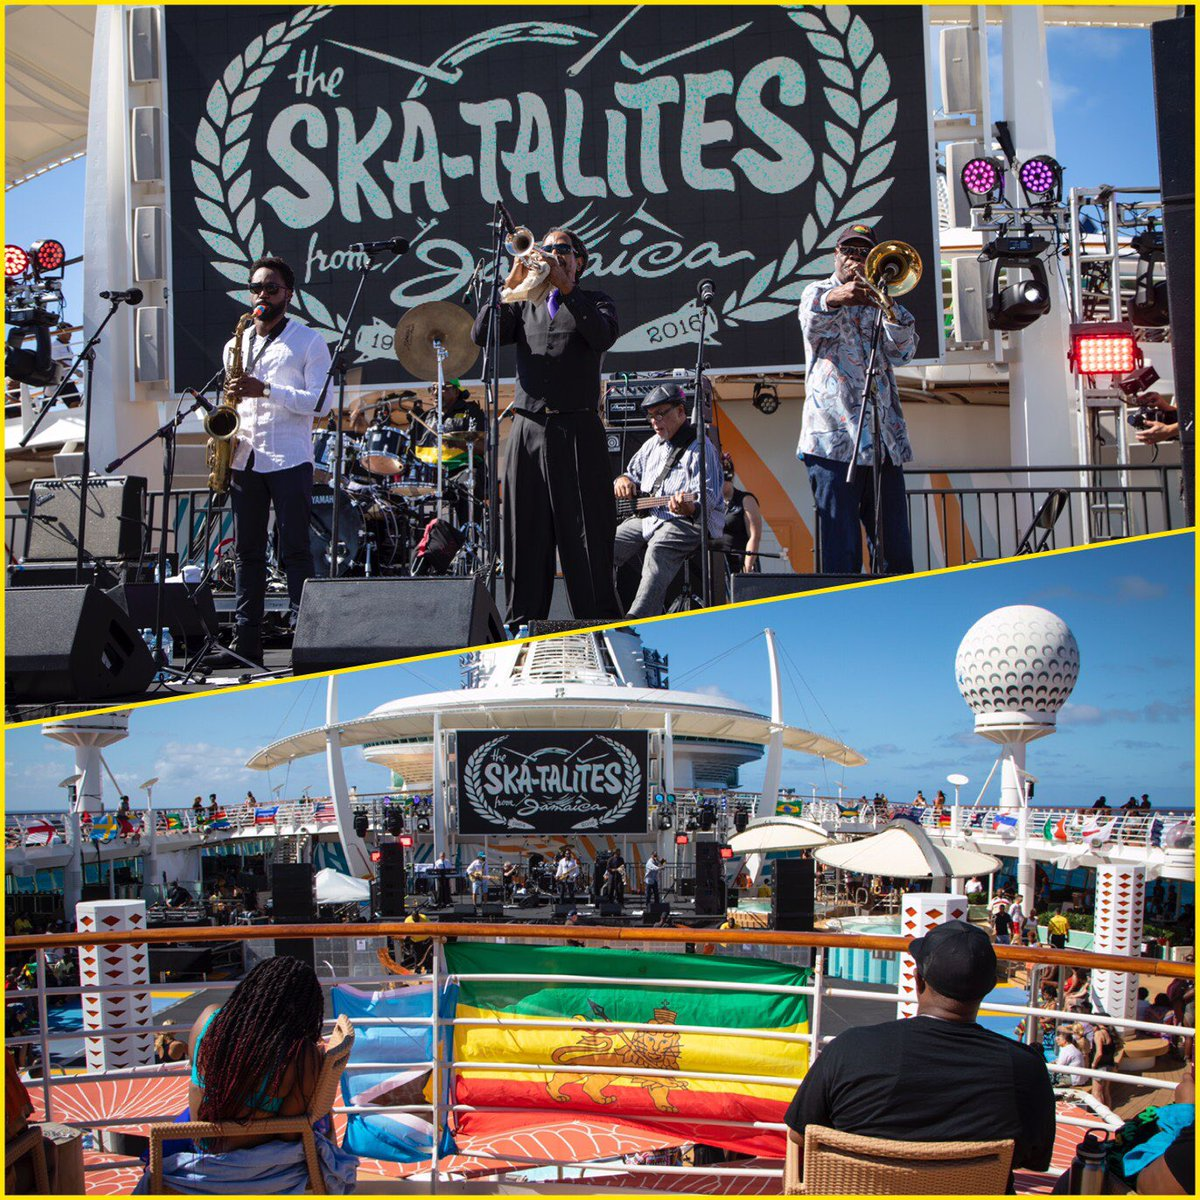 It was smooth sailing when the legendary @Skatalites took the stage with #KenBoothe, #LeroySibbles & #HoraceAndy during our 5th Year Anniversary #WTJRC!! ❤️💛💚⁣ ⁣ 📸: @EvanWo ⁣ #Skatalites #WelcomeToJamrock #Reggae #Cruise #ReggaeMusic #Memories #GoodVibes #Jamrock2018 https://t.co/2d6fU6Qolz